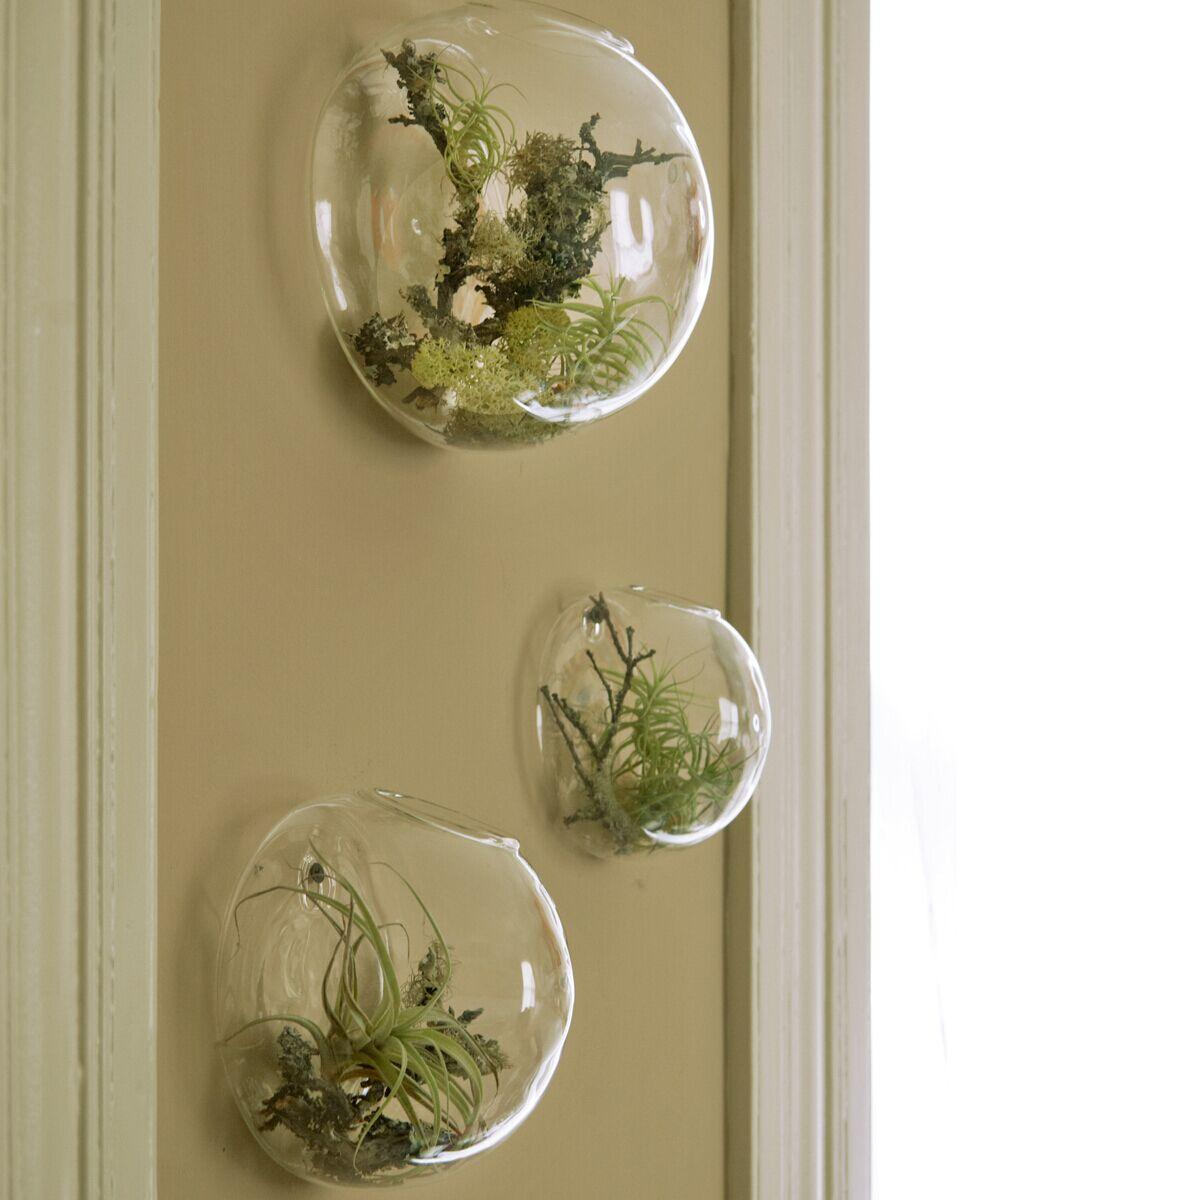 Wall Plant Decor air plant wall glass terrarium,wall bubble terrarium,wall planters